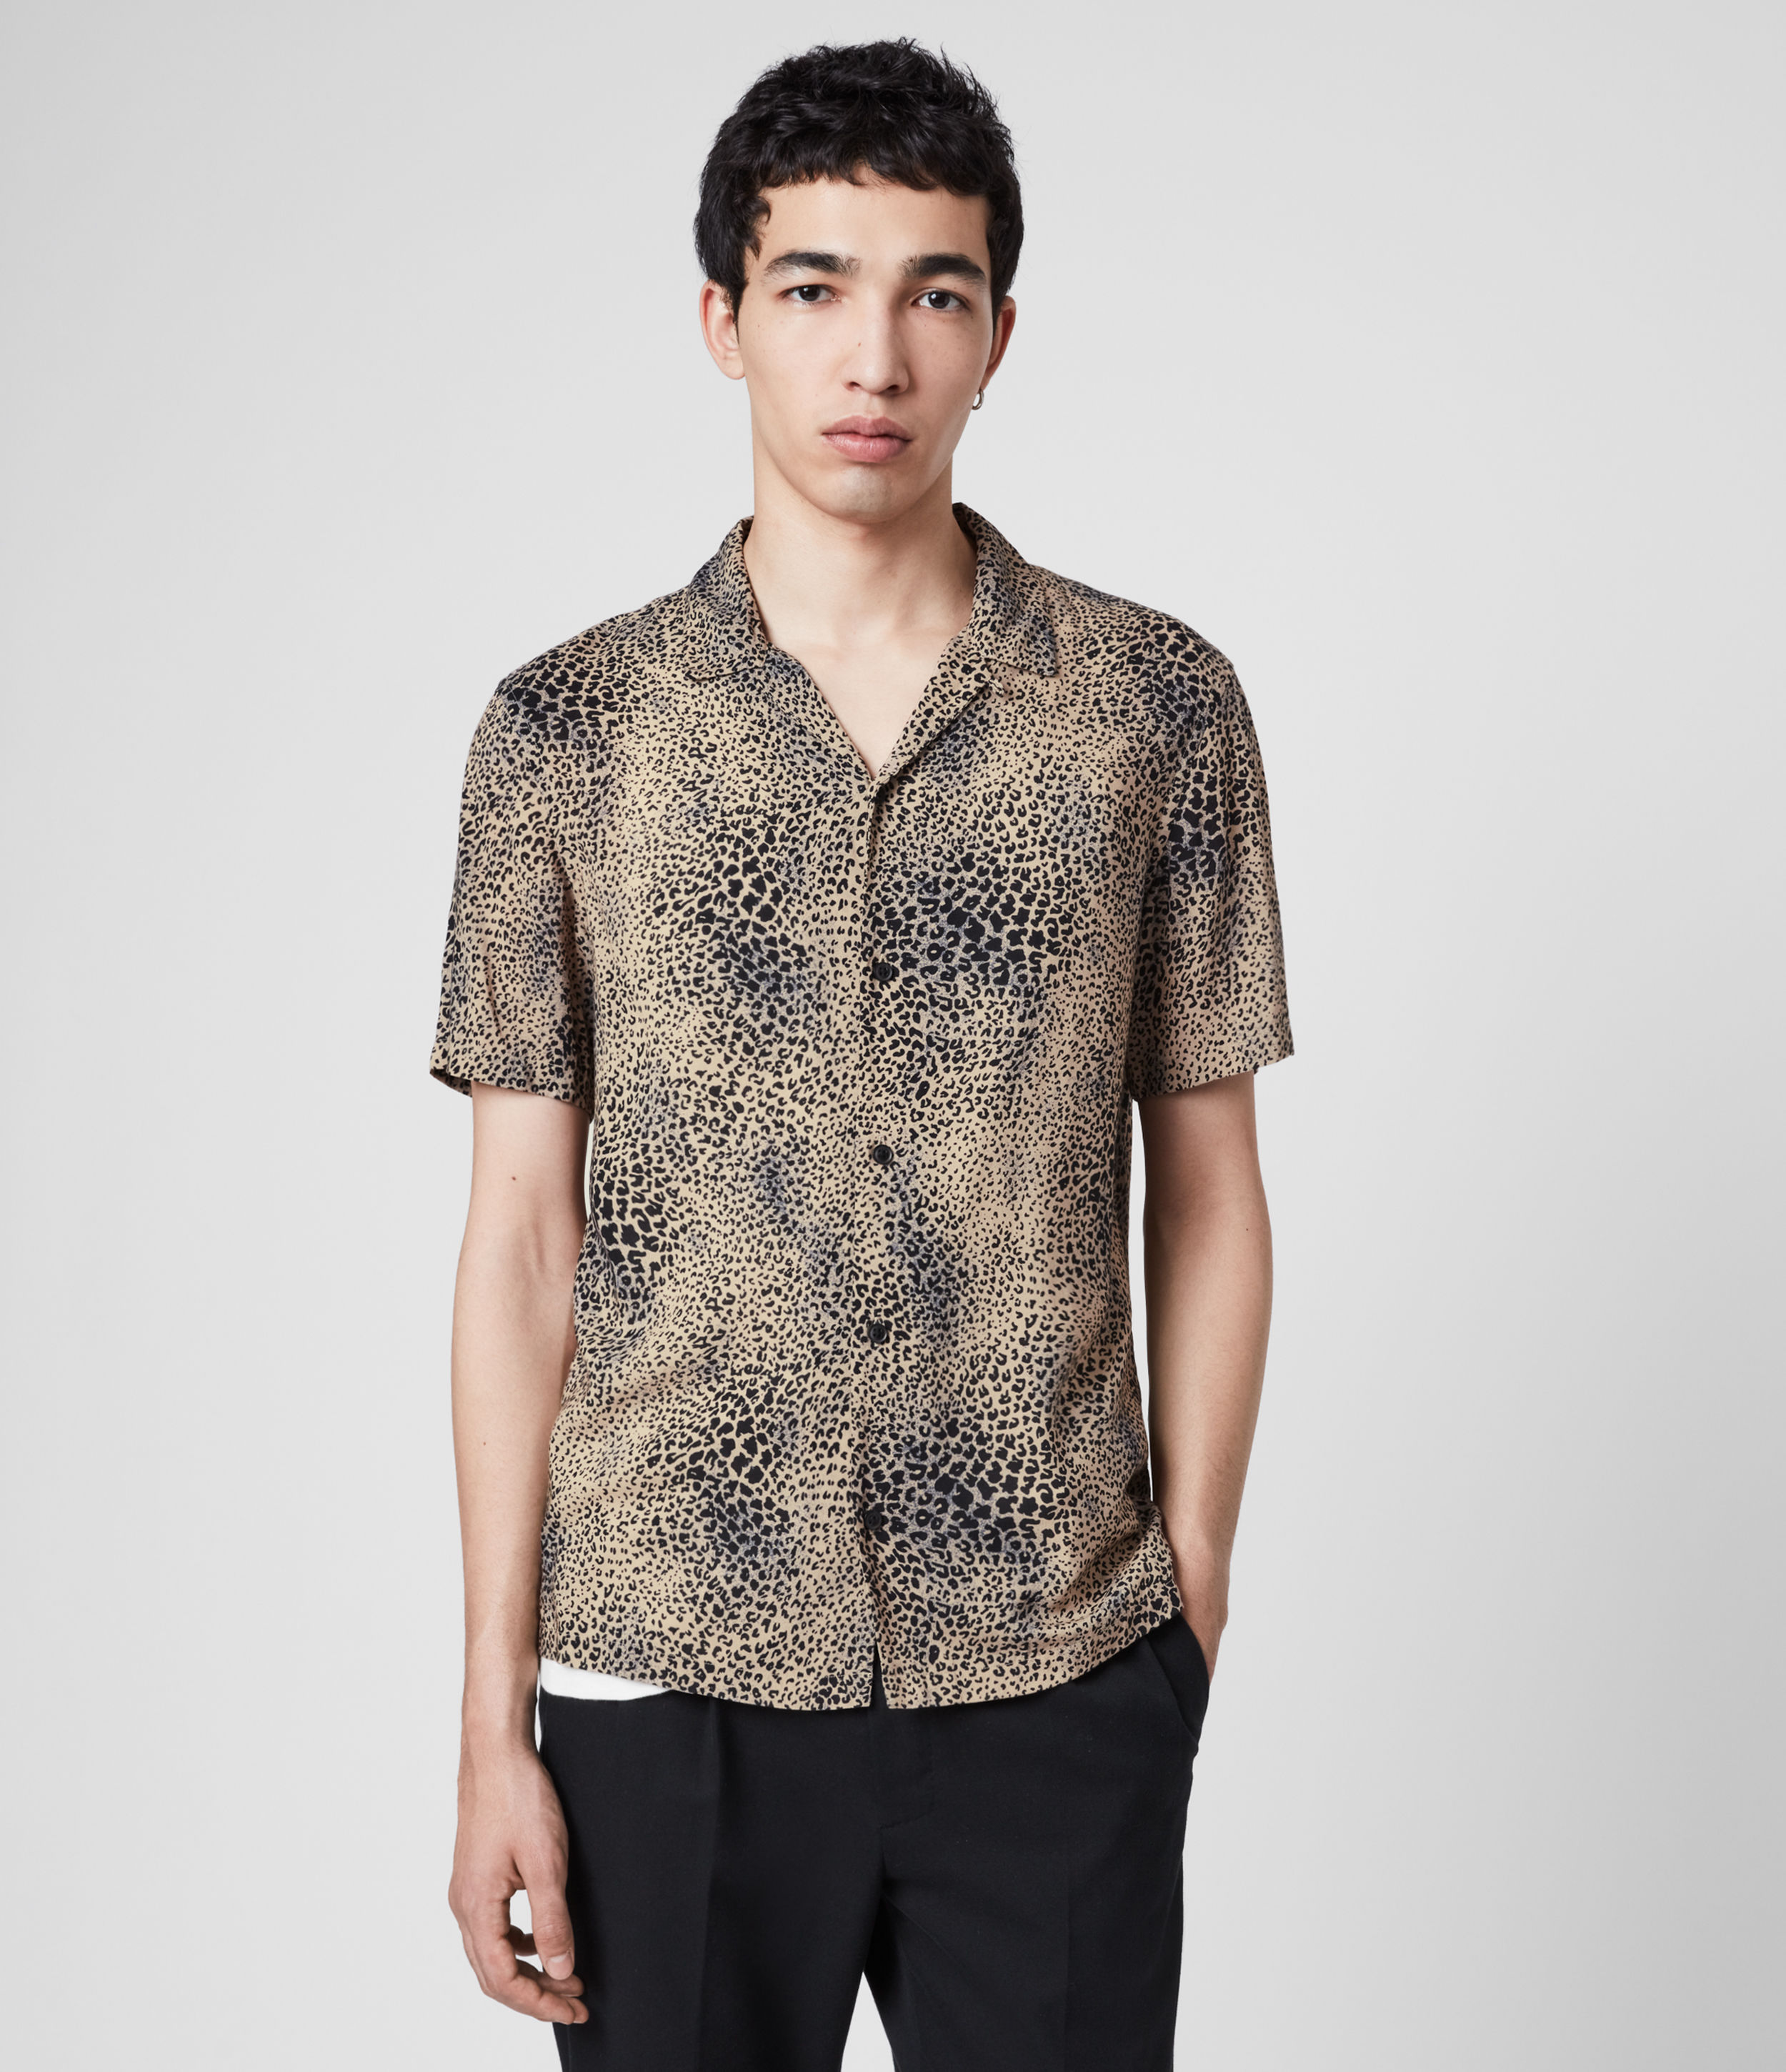 AllSaints Men's Leopard Print Lightweight Diffusion Shirt, Brown and Black, Size: L